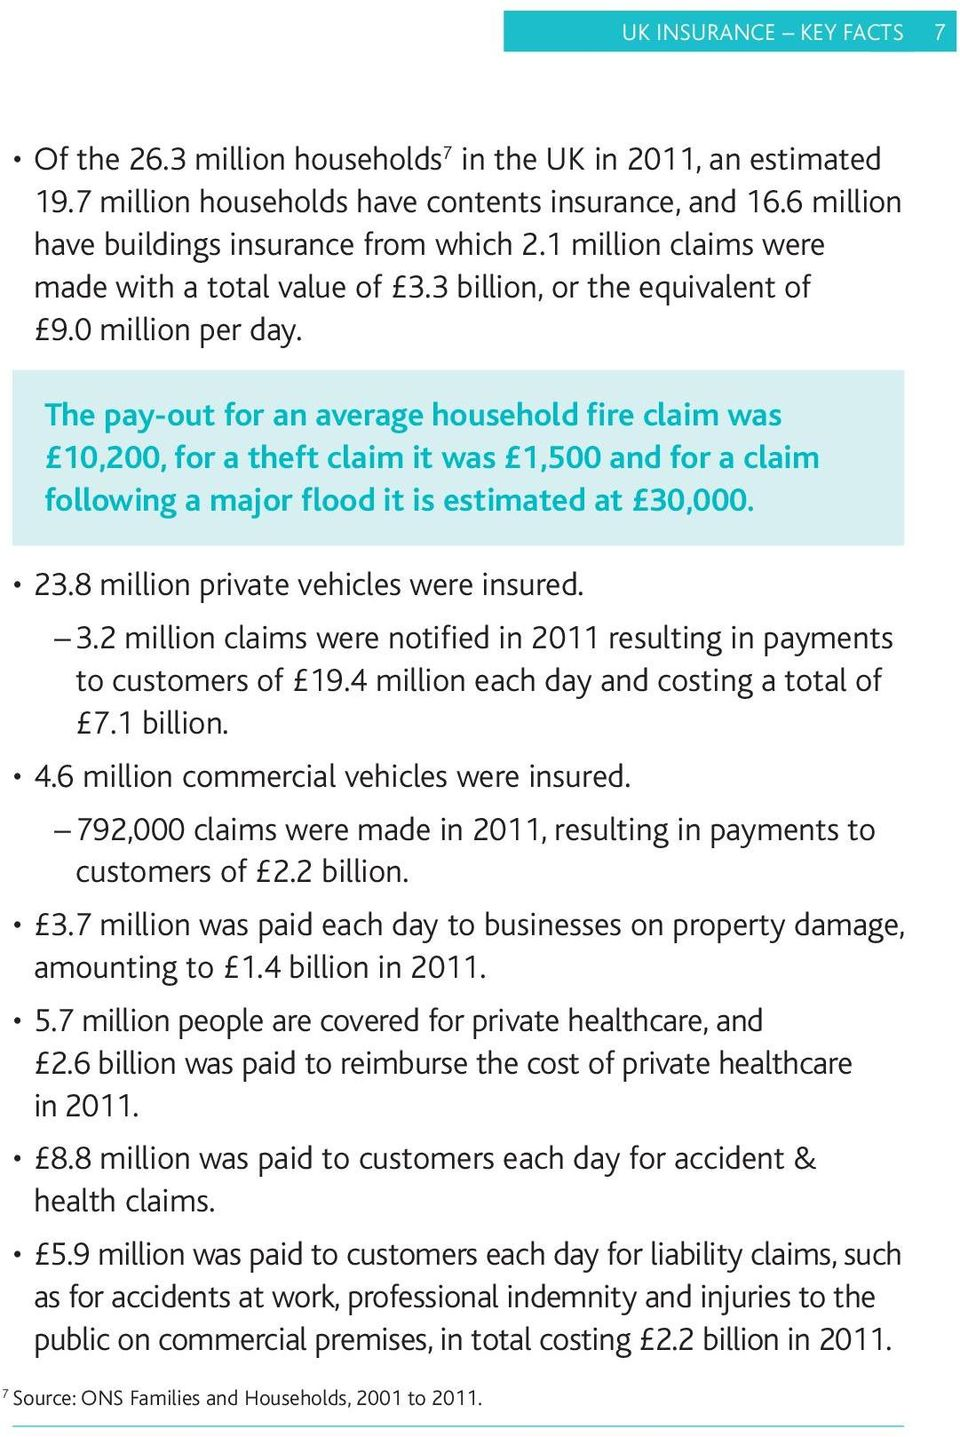 The pay-out for an average household fire claim was 10,200, for a theft claim it was 1,500 and for a claim following a major flood it is estimated at 30,000. 23.